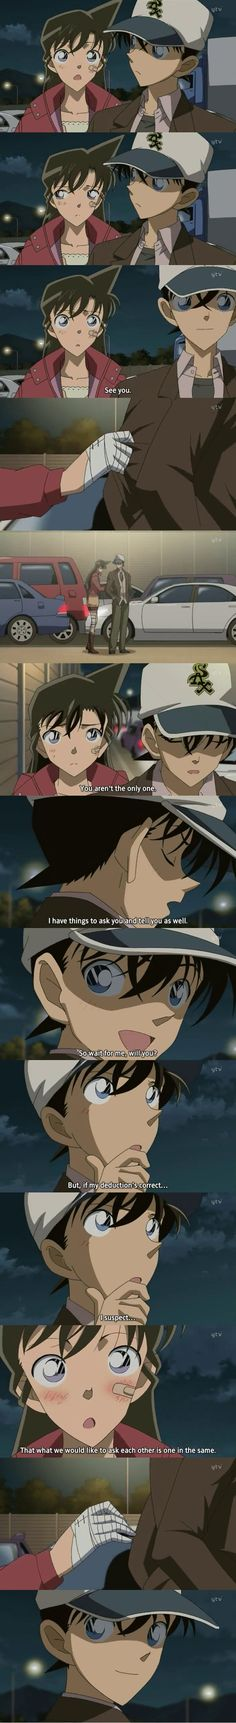 What she truly wants to ask - Shinichi and Ran